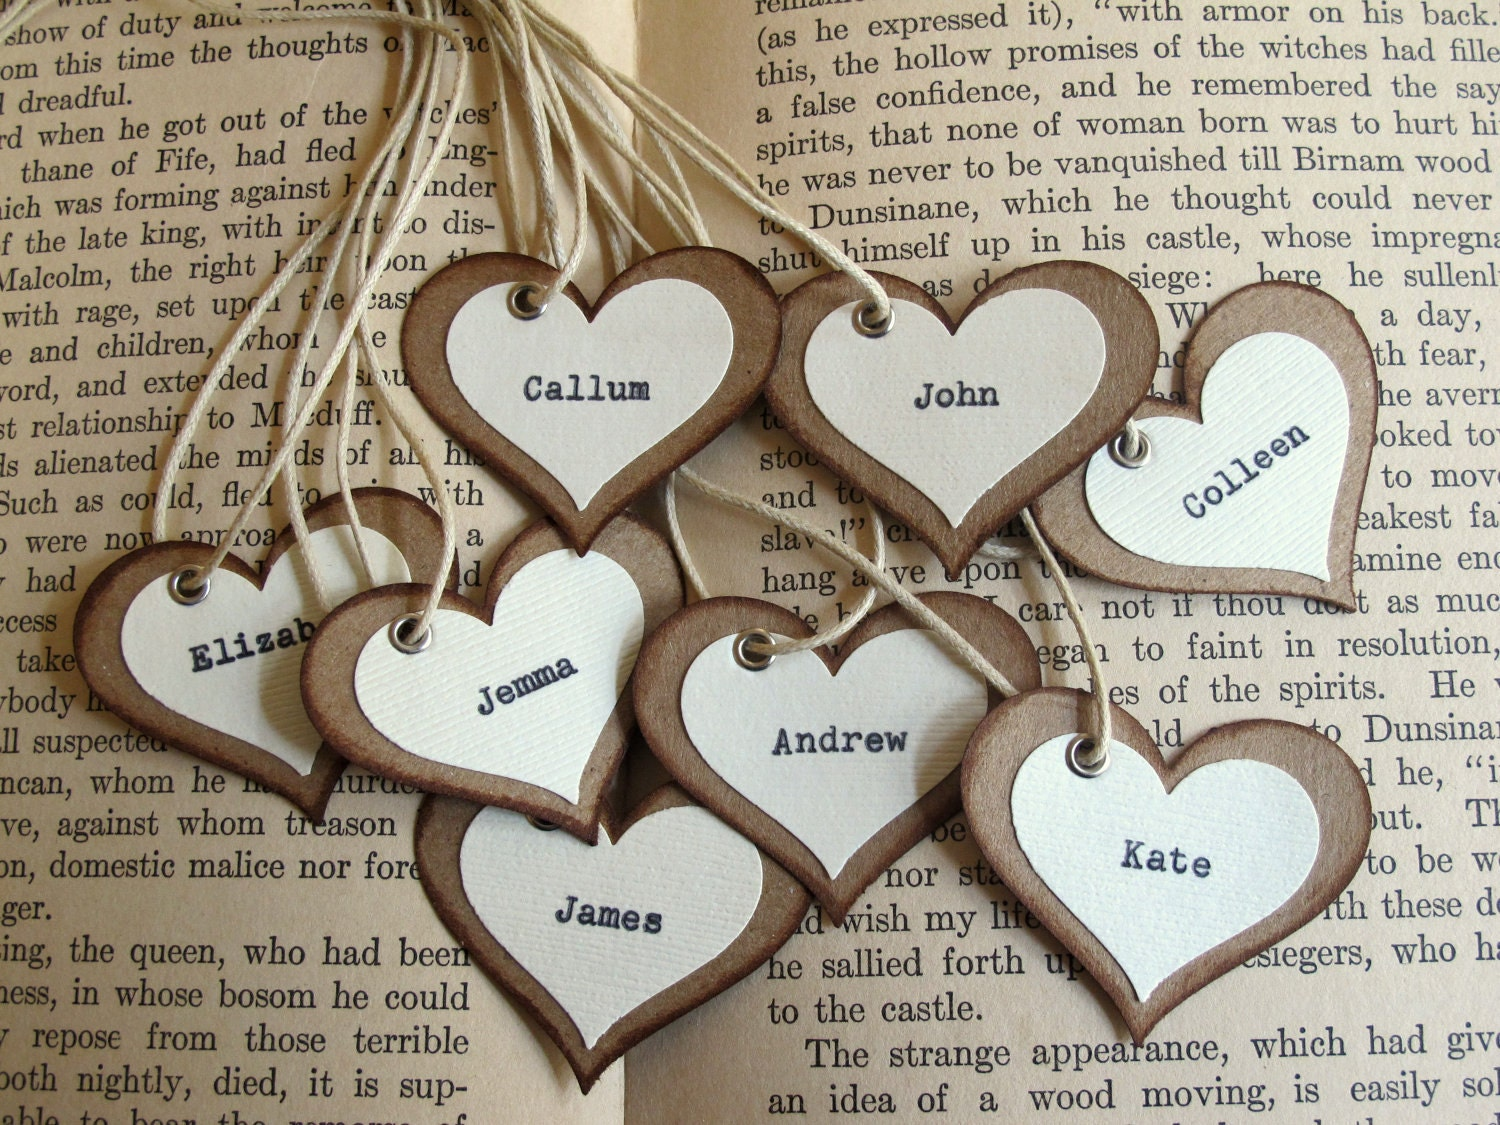 Wedding Favor Cards Tags : favorite favorited like this item add it to your favorites to revisit ...